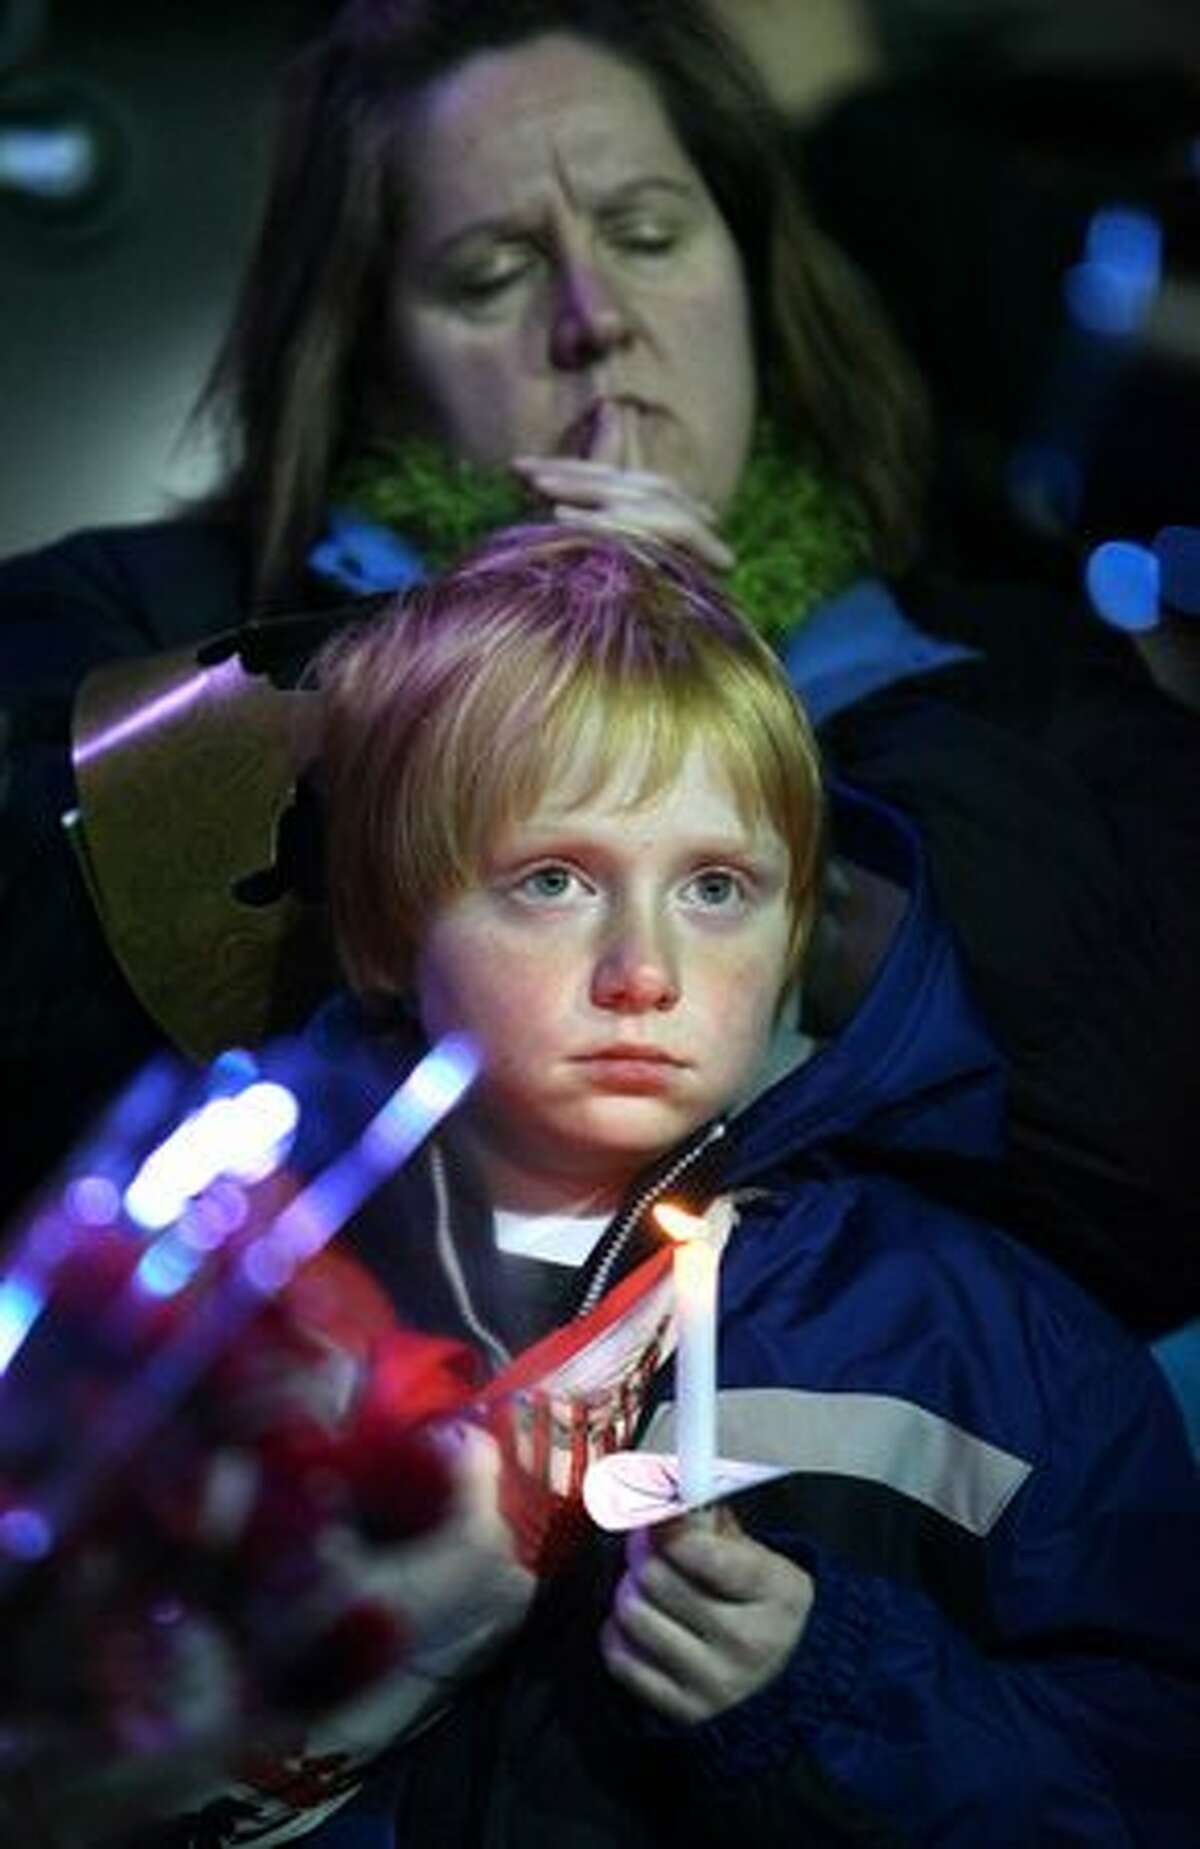 Kelly Groenwold and her son Aaron, of Lakewood, Wash., participate during a candlelight vigil on Wednesday December 2, 2009 at the Lakewood Family YMCA in Lakewood, Wash. Thousands gathered to pay their respects to four Lakewood Police officers who were shot and killed at a coffeepot Sunday morning in Parkwood.